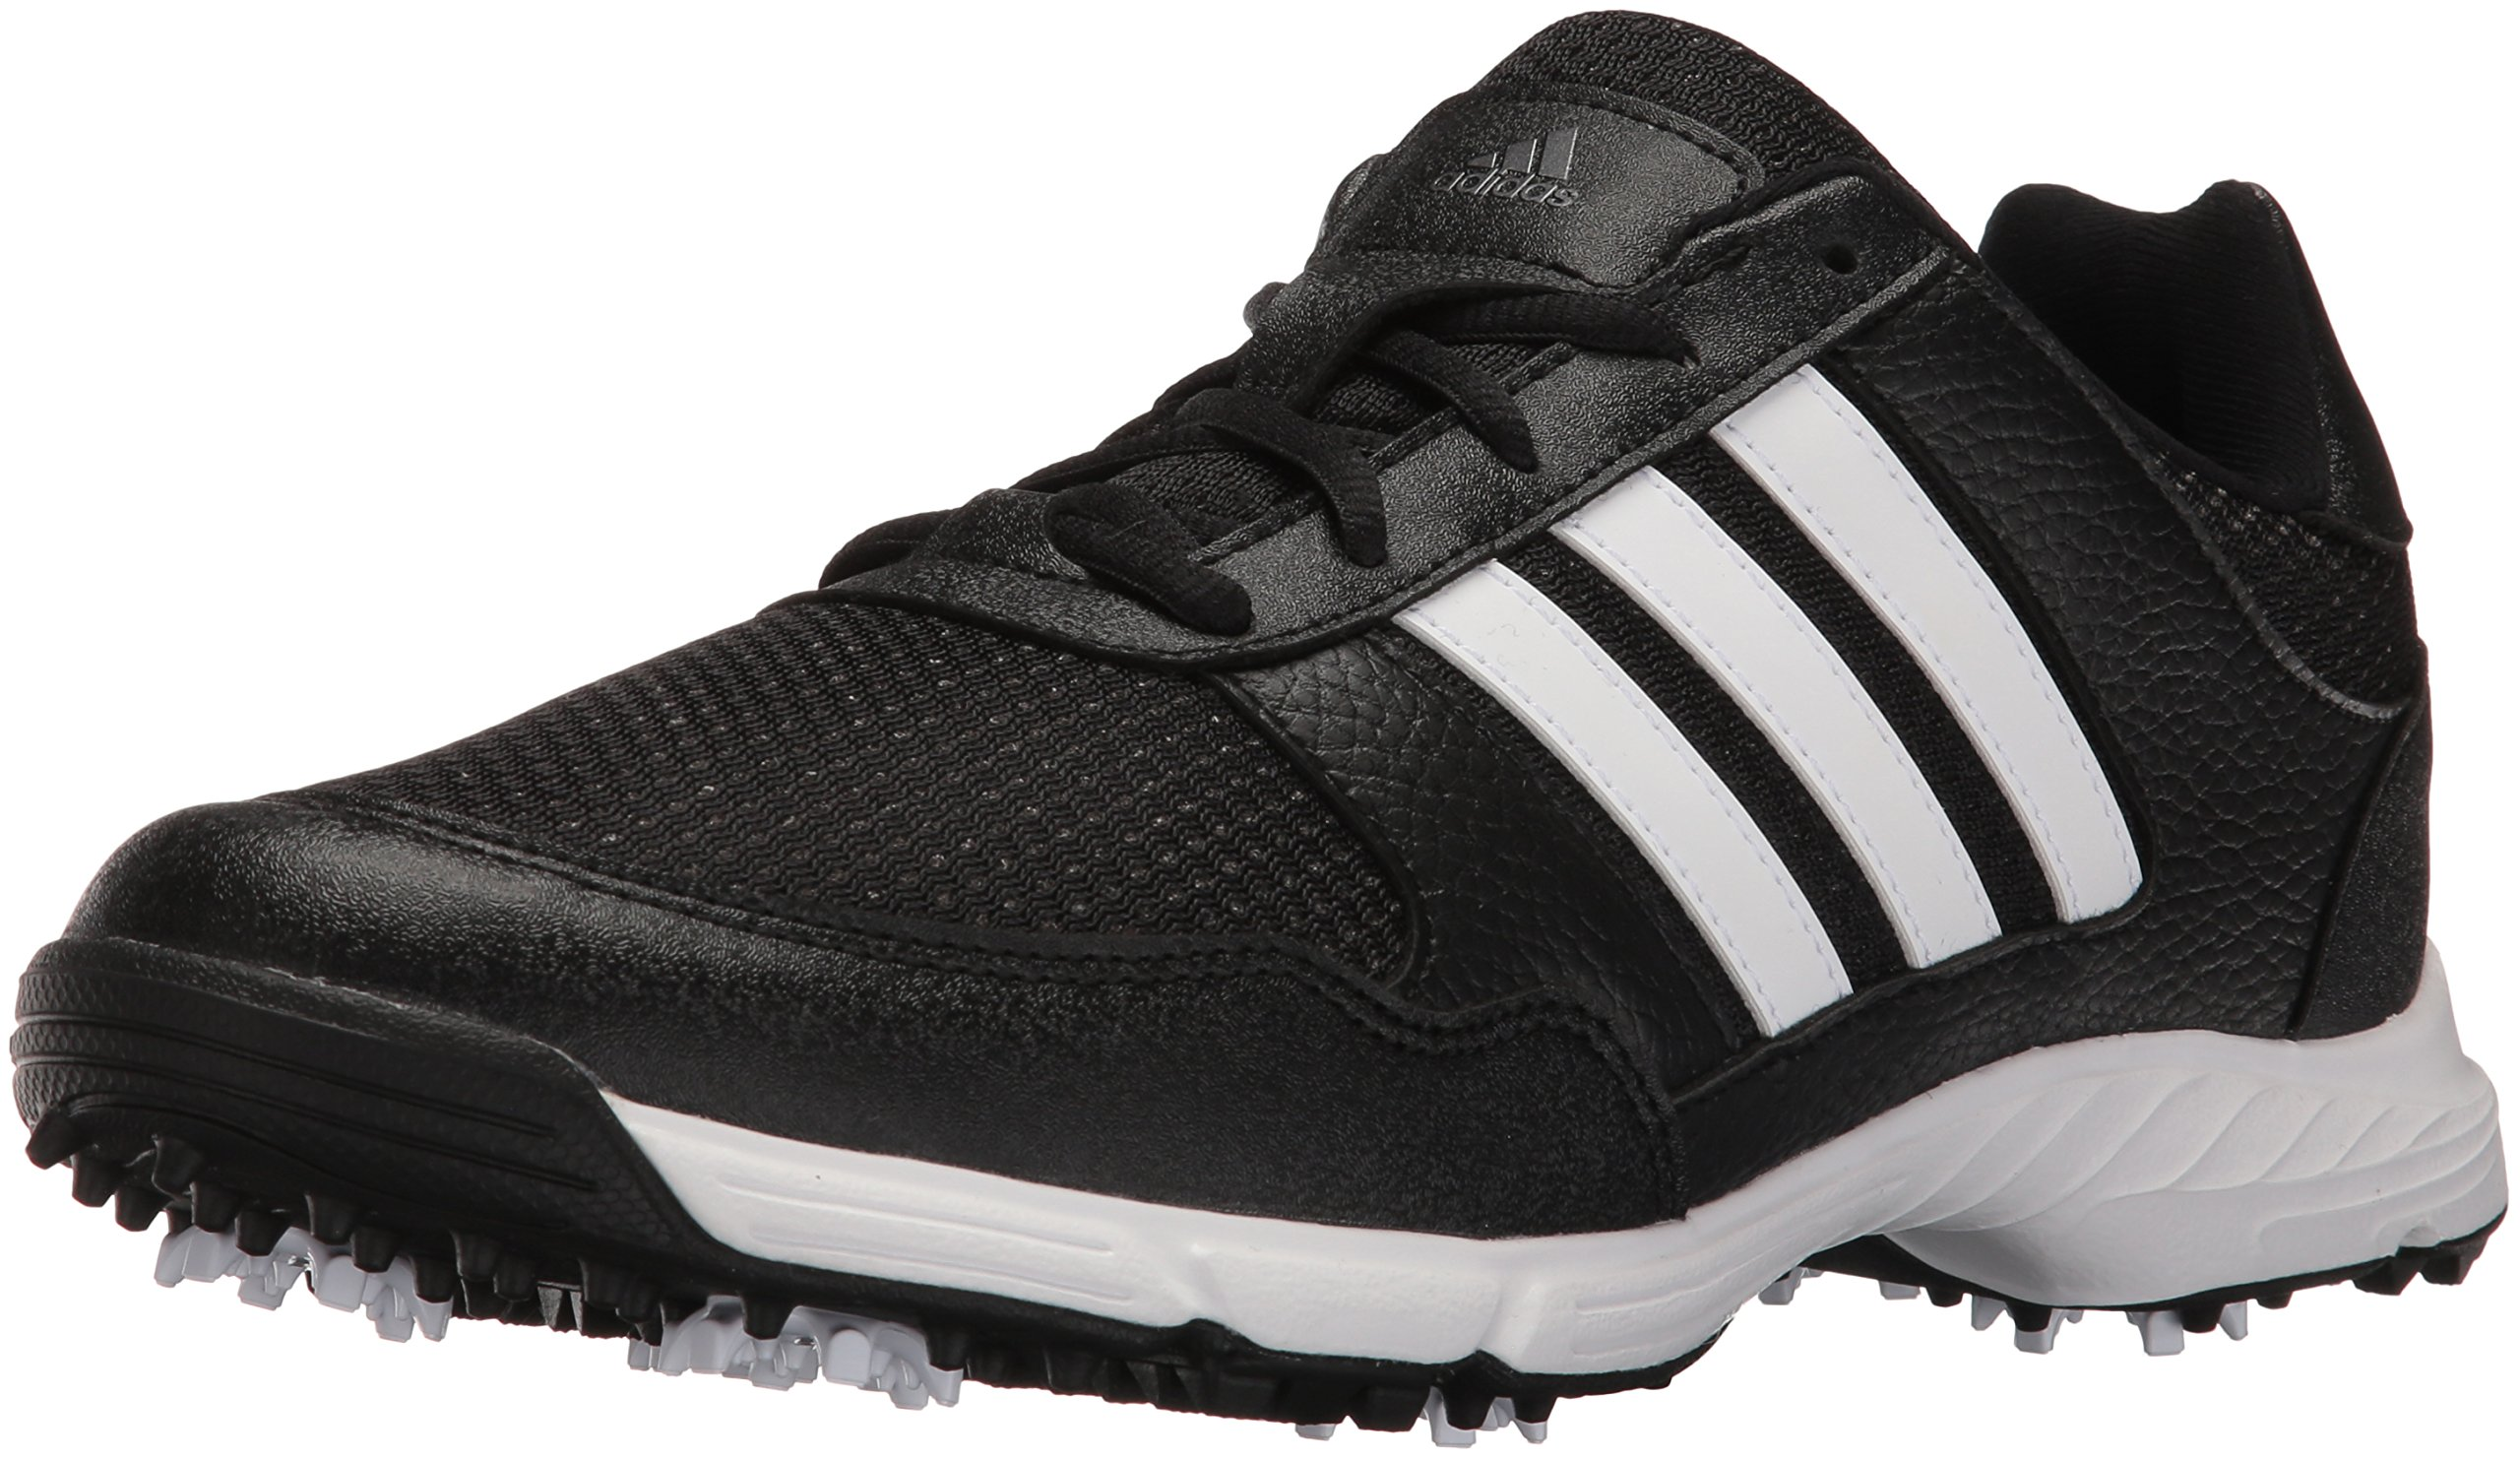 adidas Men's Tech Response Golf Shoe, Black, 10 M US by adidas